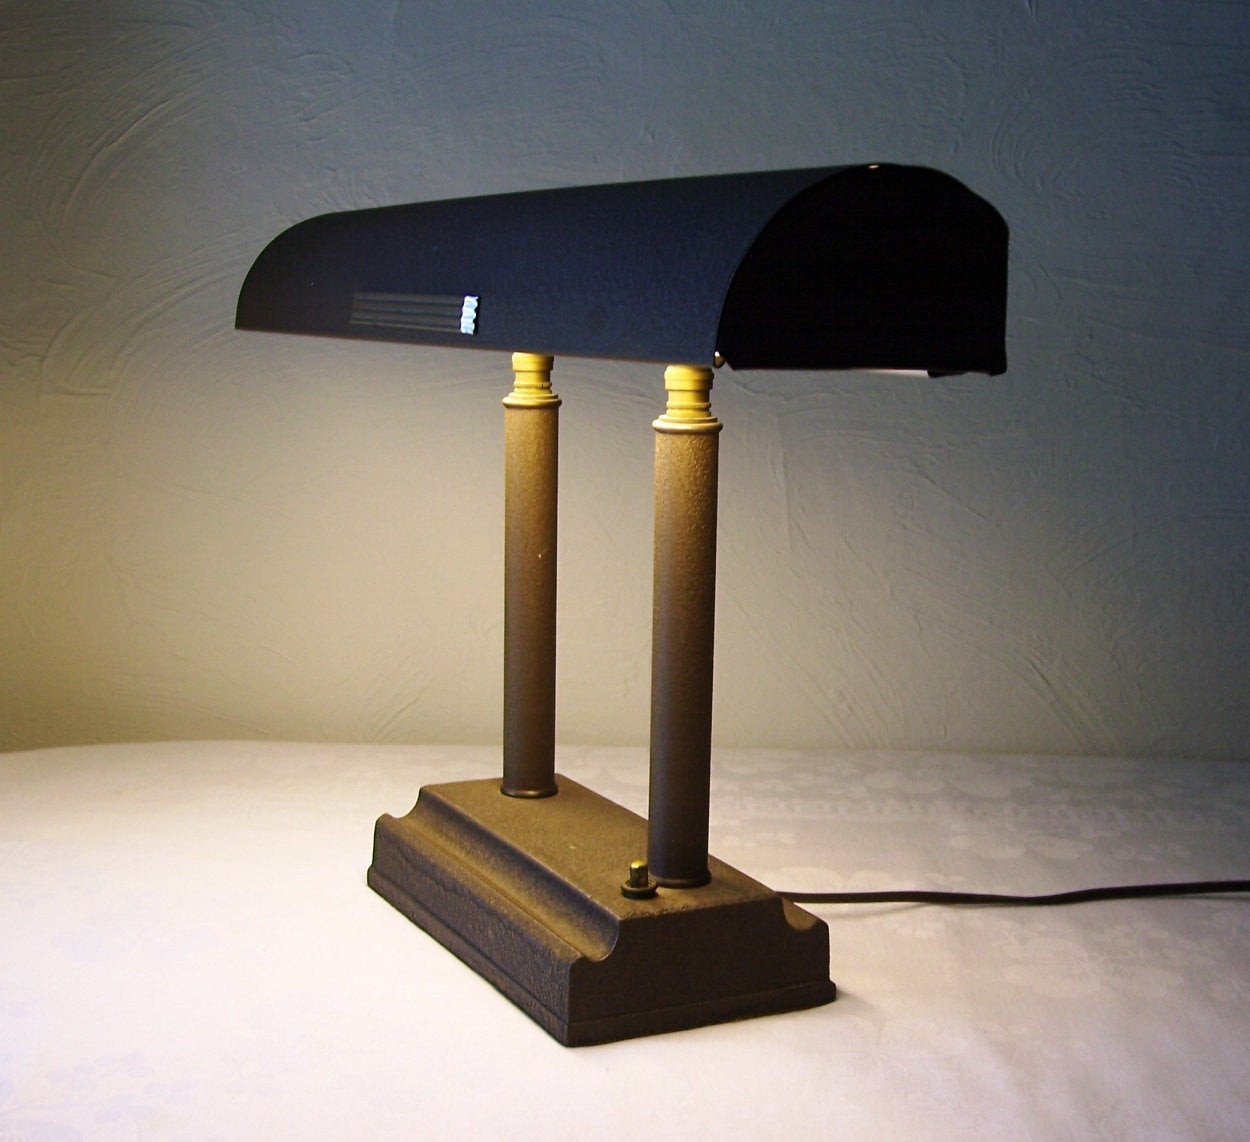 Best ideas about Vintage Desk Lamp . Save or Pin vintage art deco desk lamp adjustable light Now.